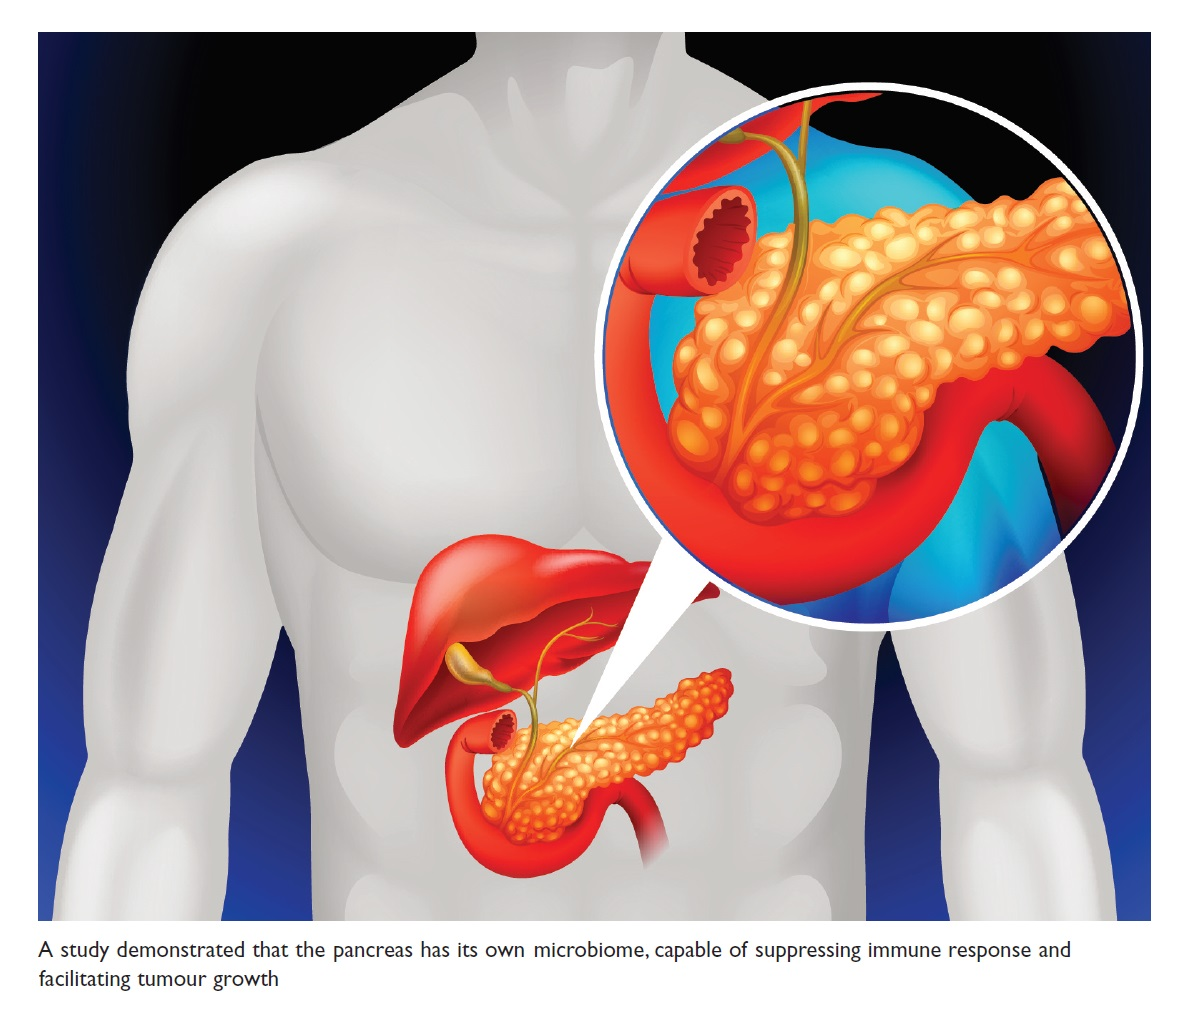 Figure 1 A study demonstrated that the pancreas has its own microbiome